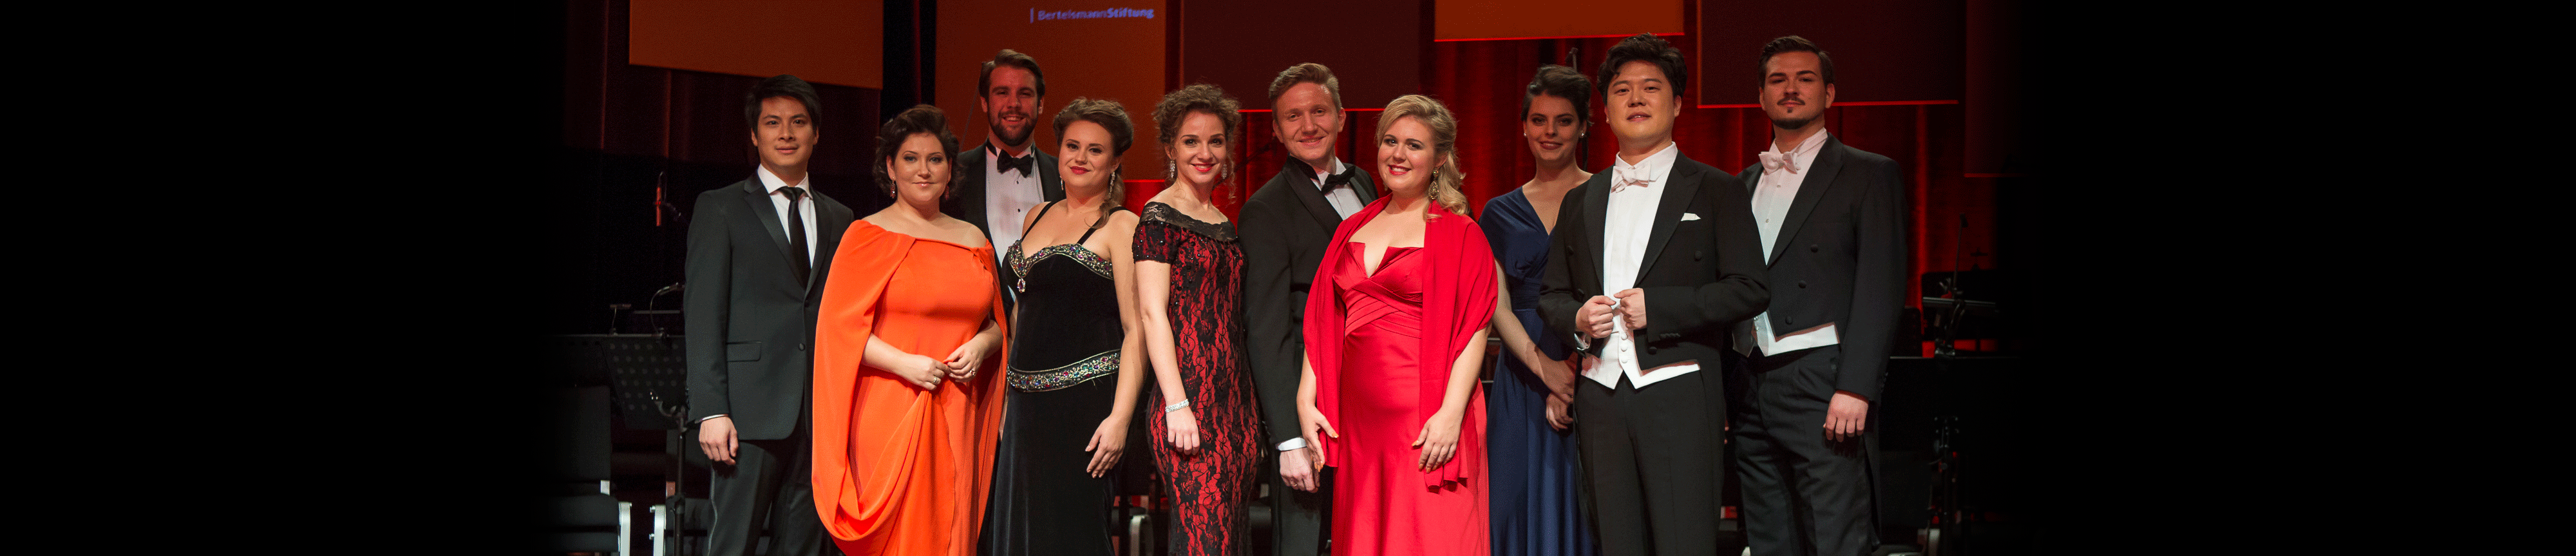 Final of the International Singing Competition Neue Stimmen – Awards Ceremony